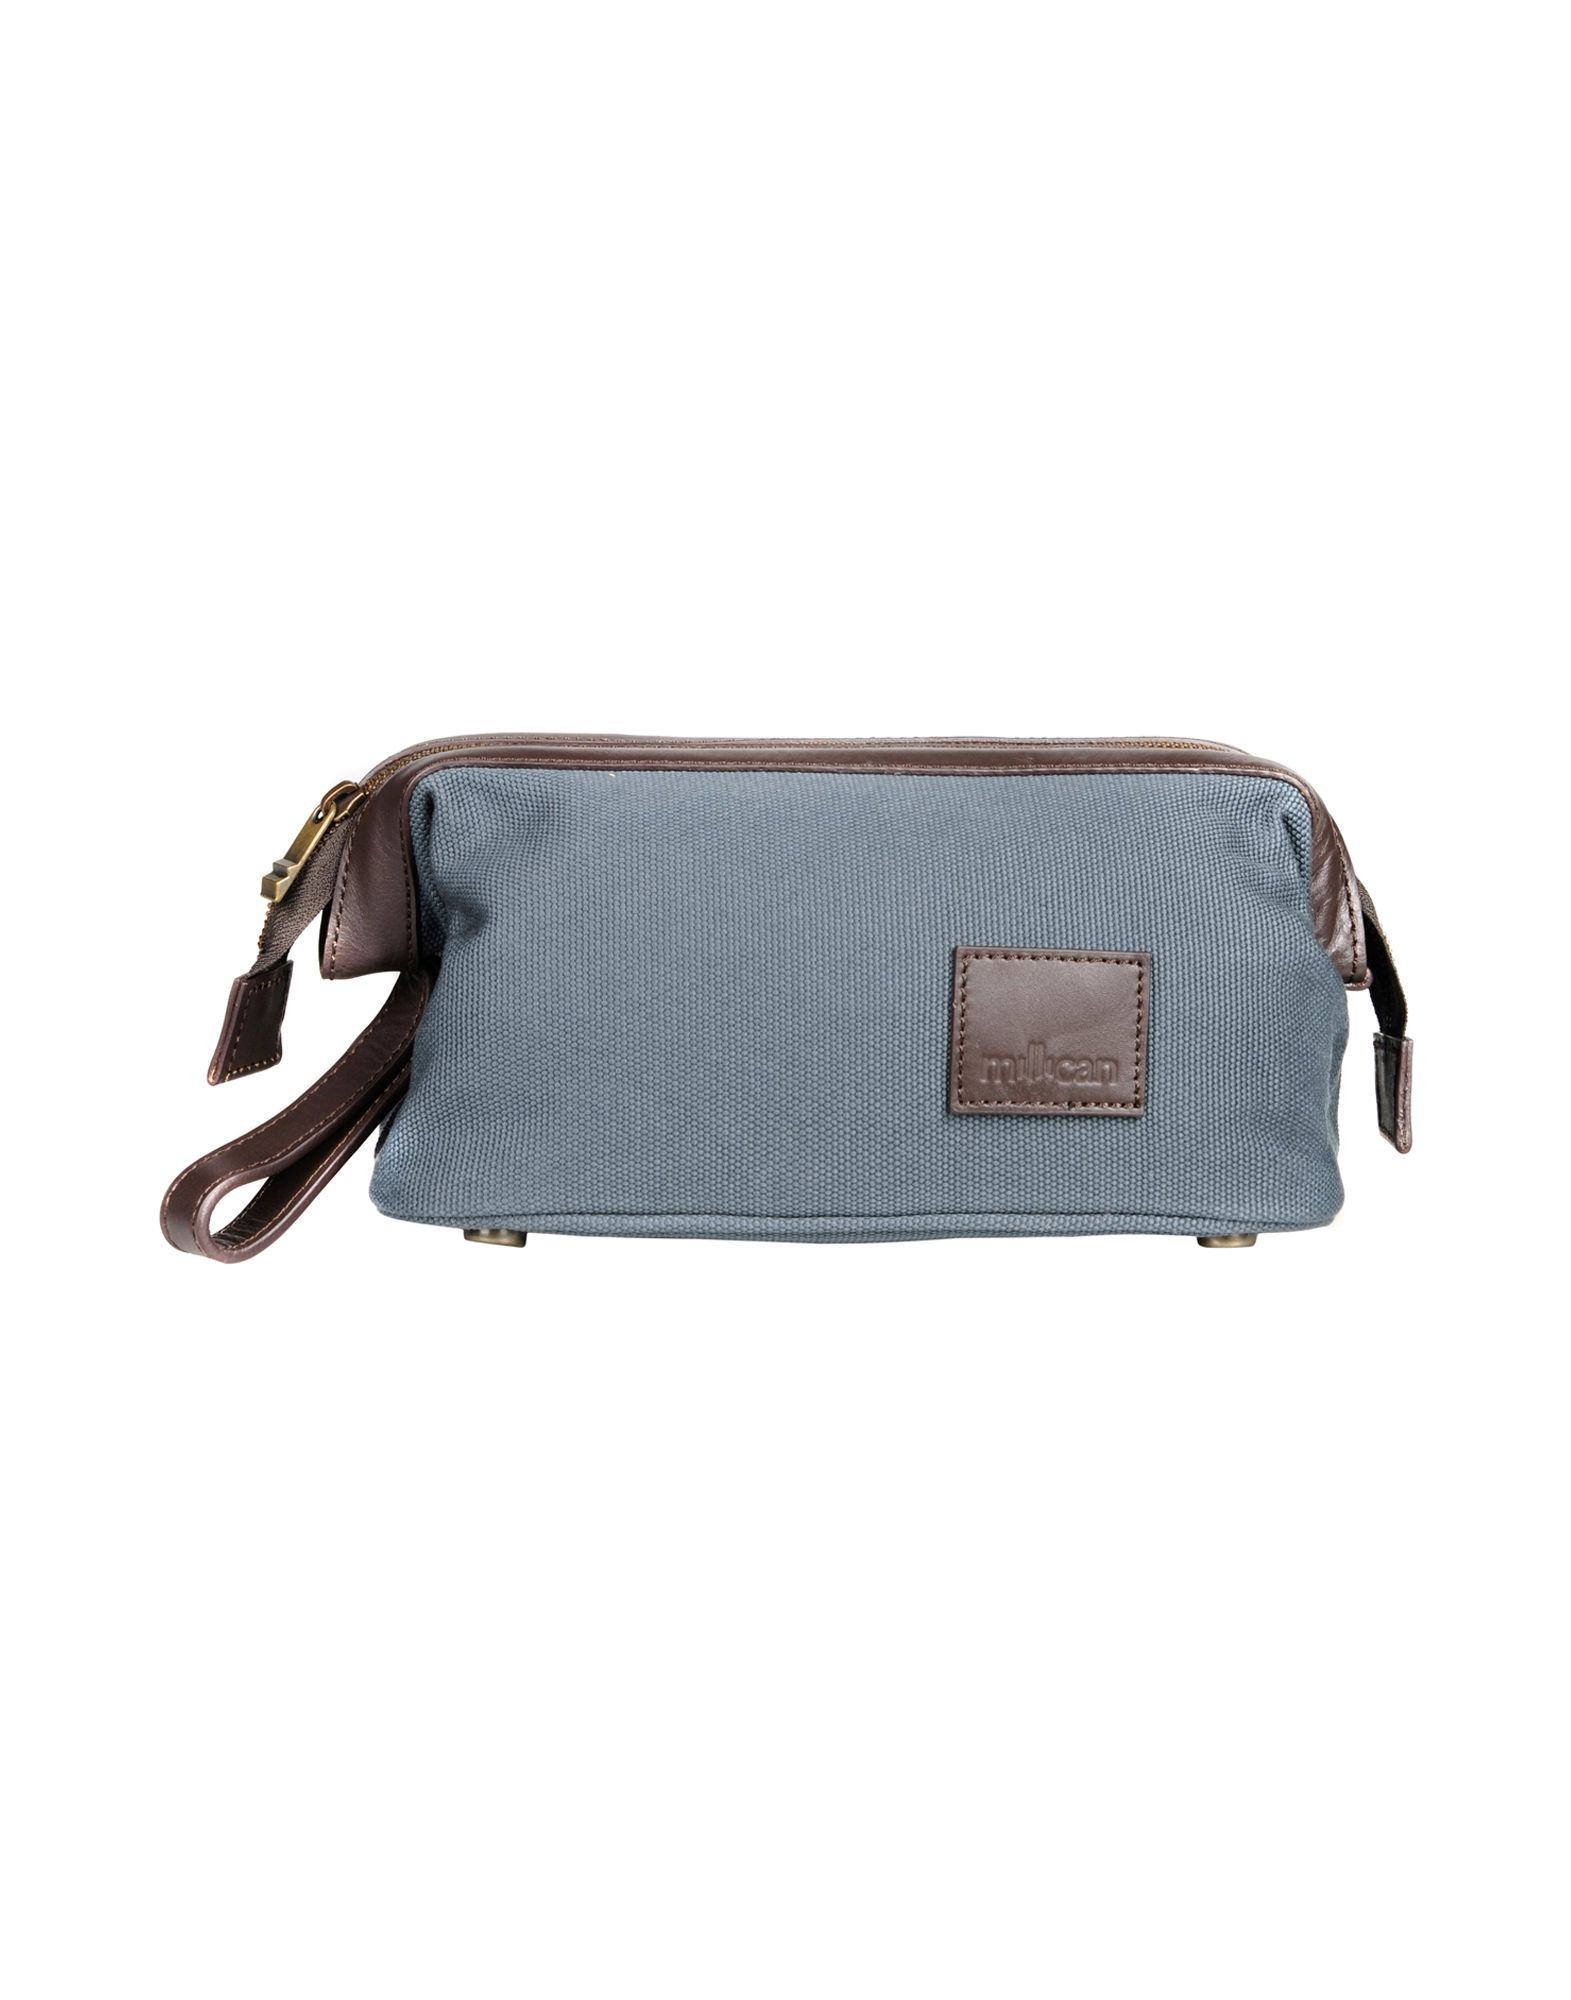 MILLICAN Beauty case